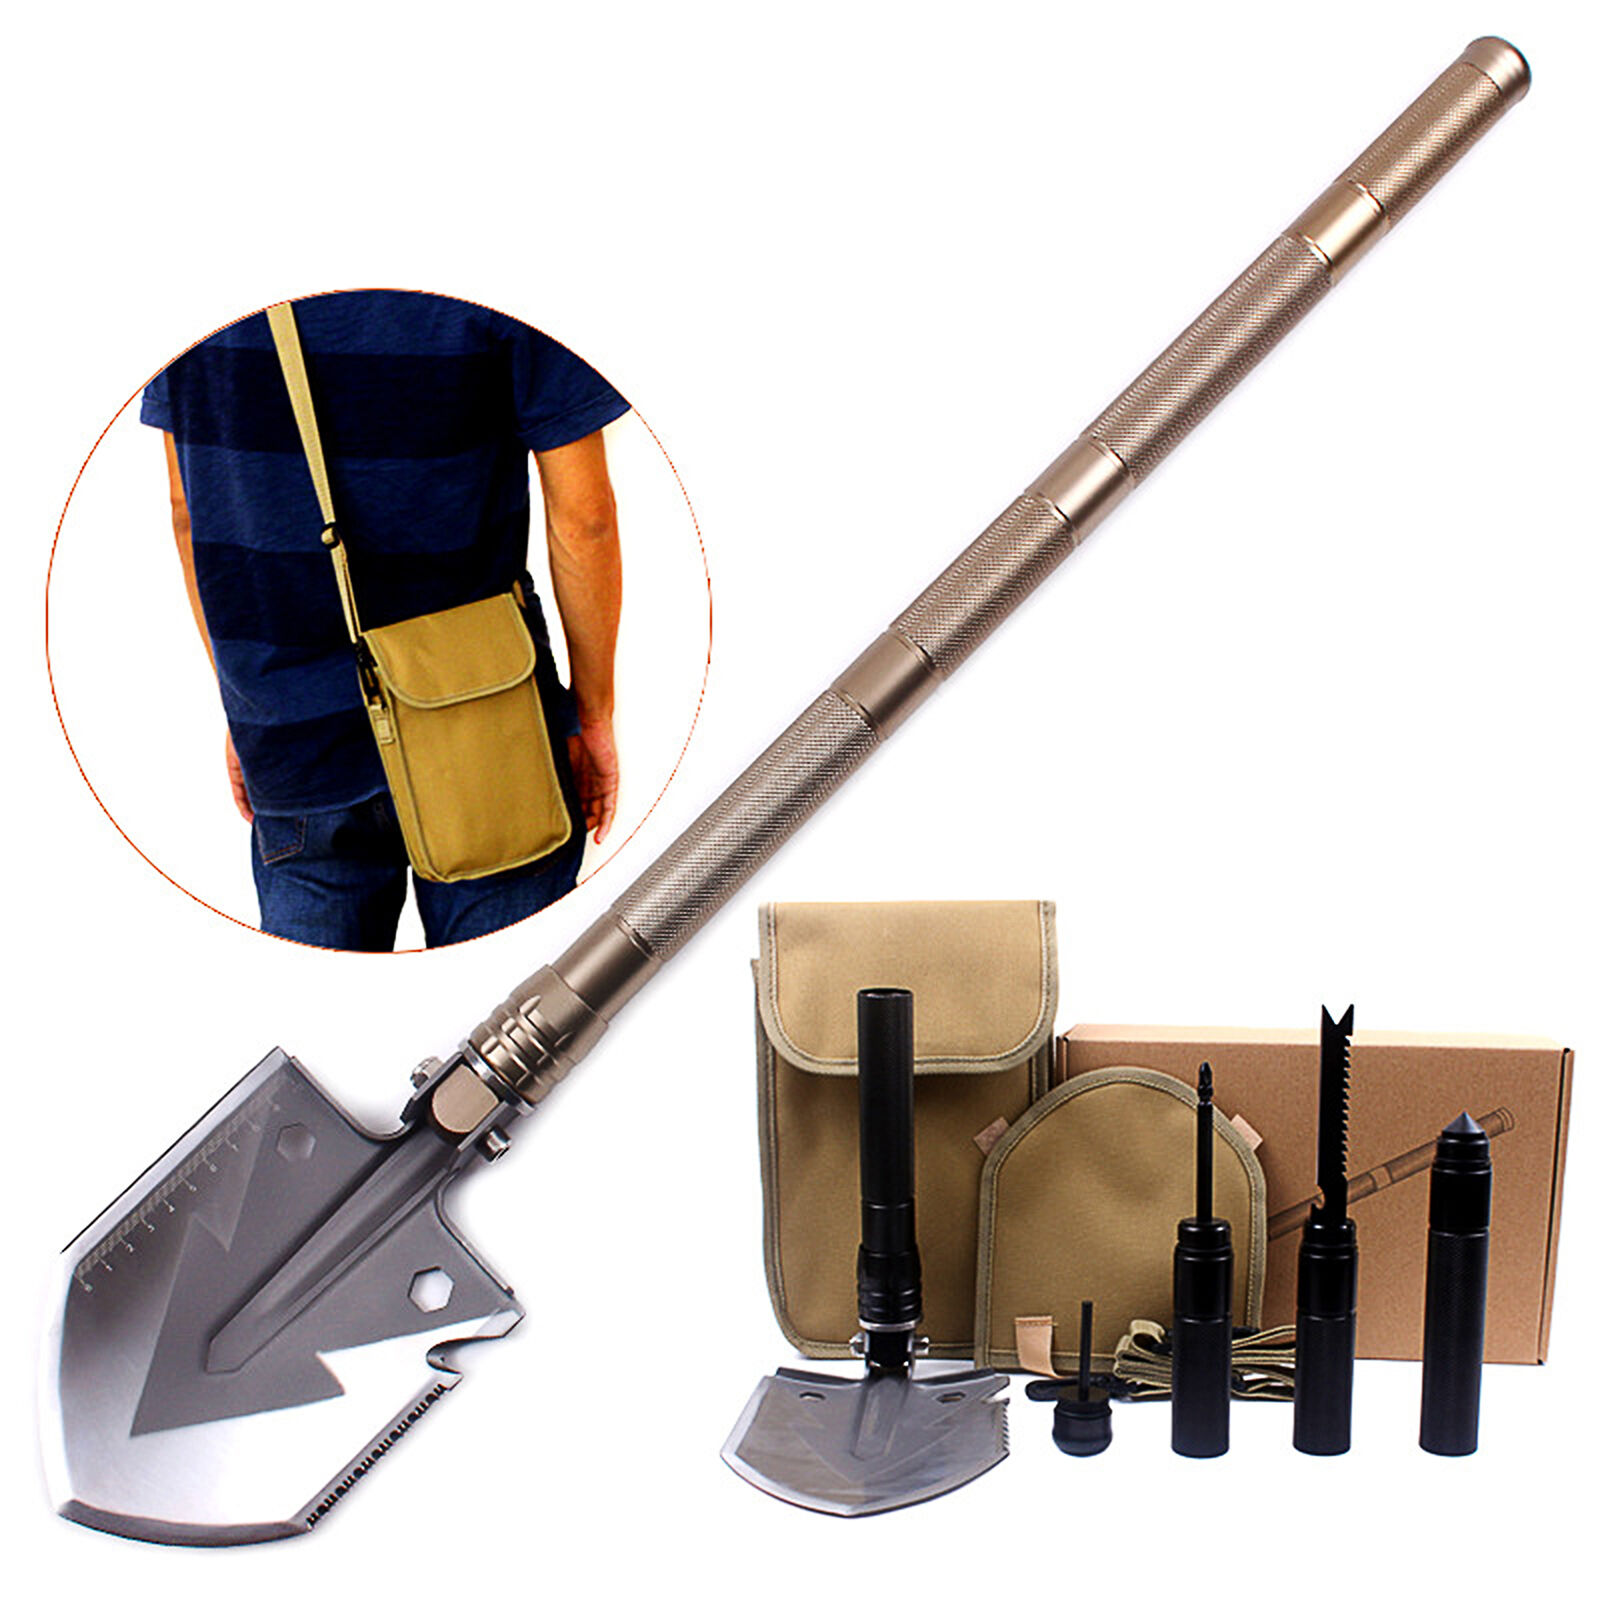 75cm Multi-function Folding Shovel ,Camping Hiking Garden Engineer  Tool  official quality